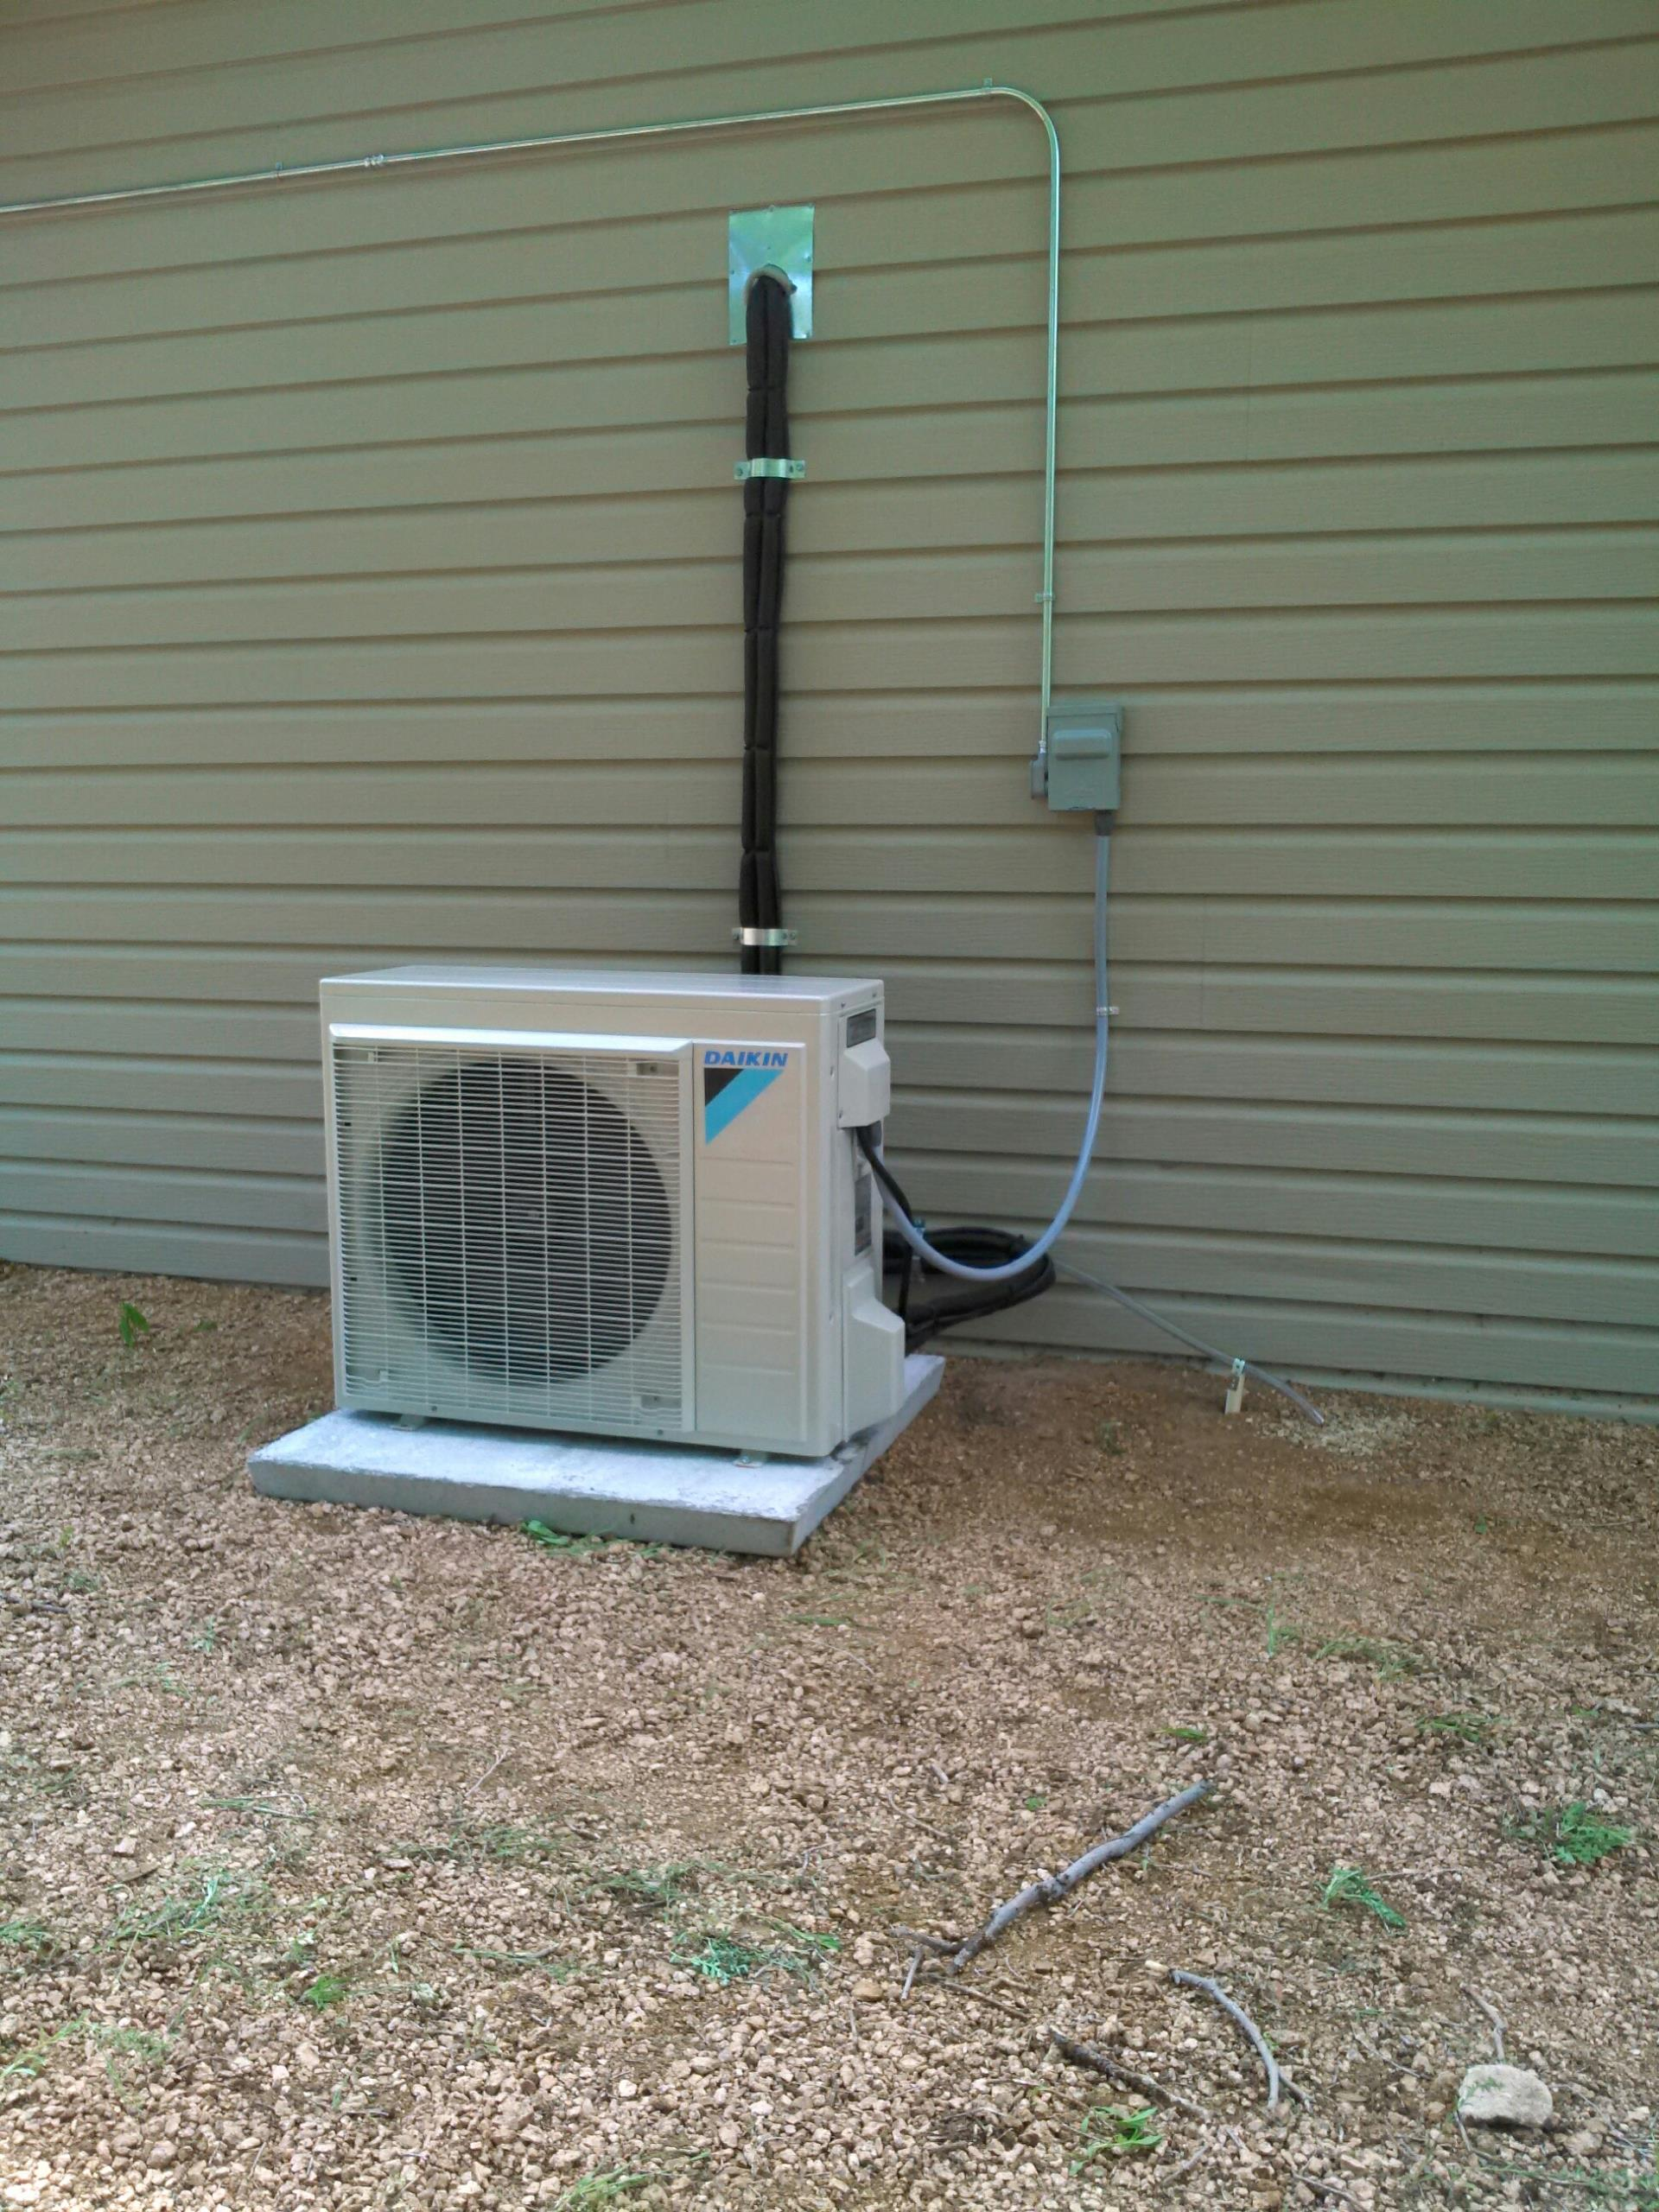 Canyon, TX - New installation of a Daikin mini split air conditioning system by Amarillo Air Conditioning.